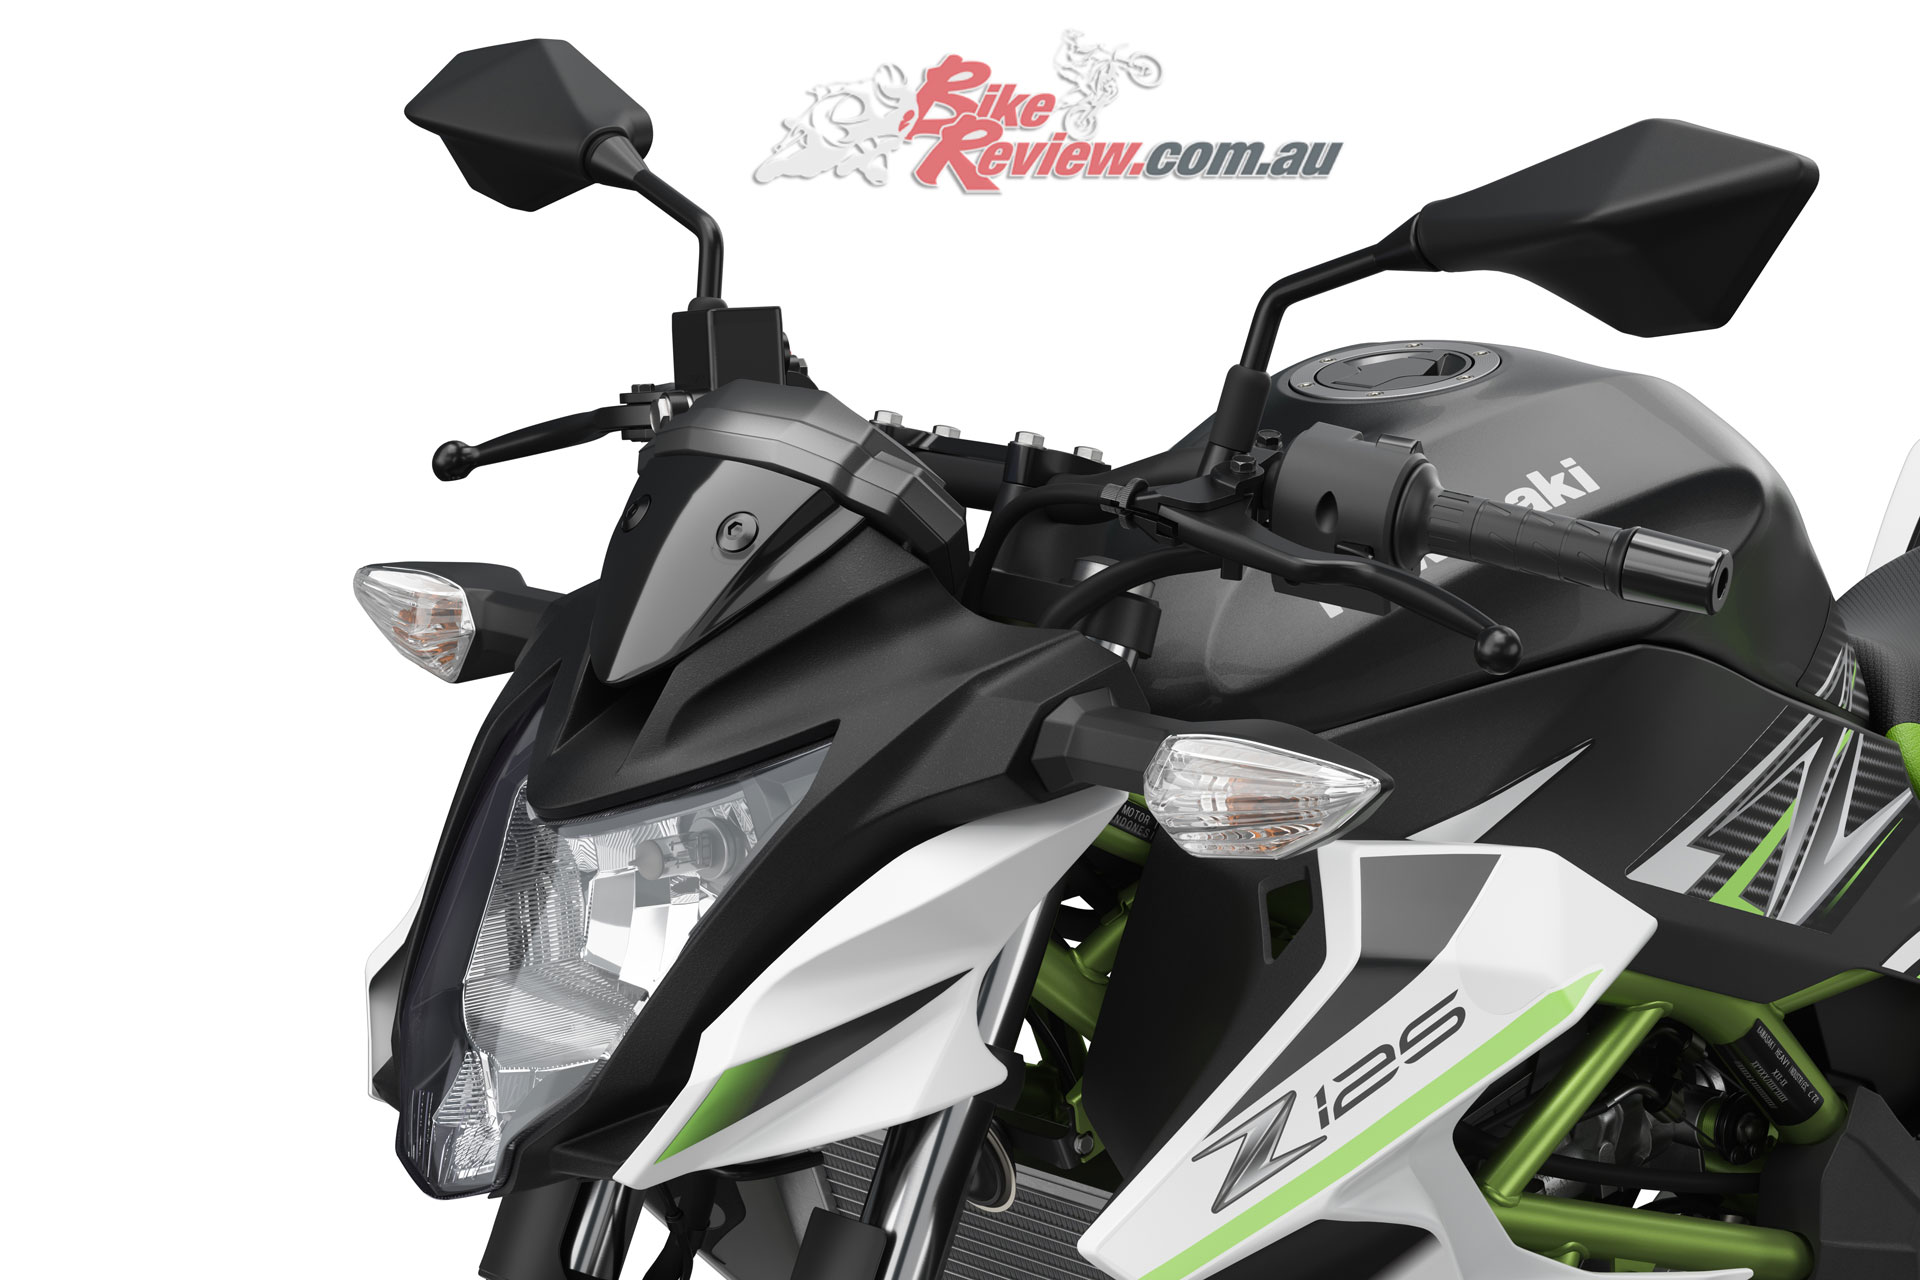 2019 Kawasaki Z125 - The Z125 on the other hand features more upright 'bars and as a result, seating position